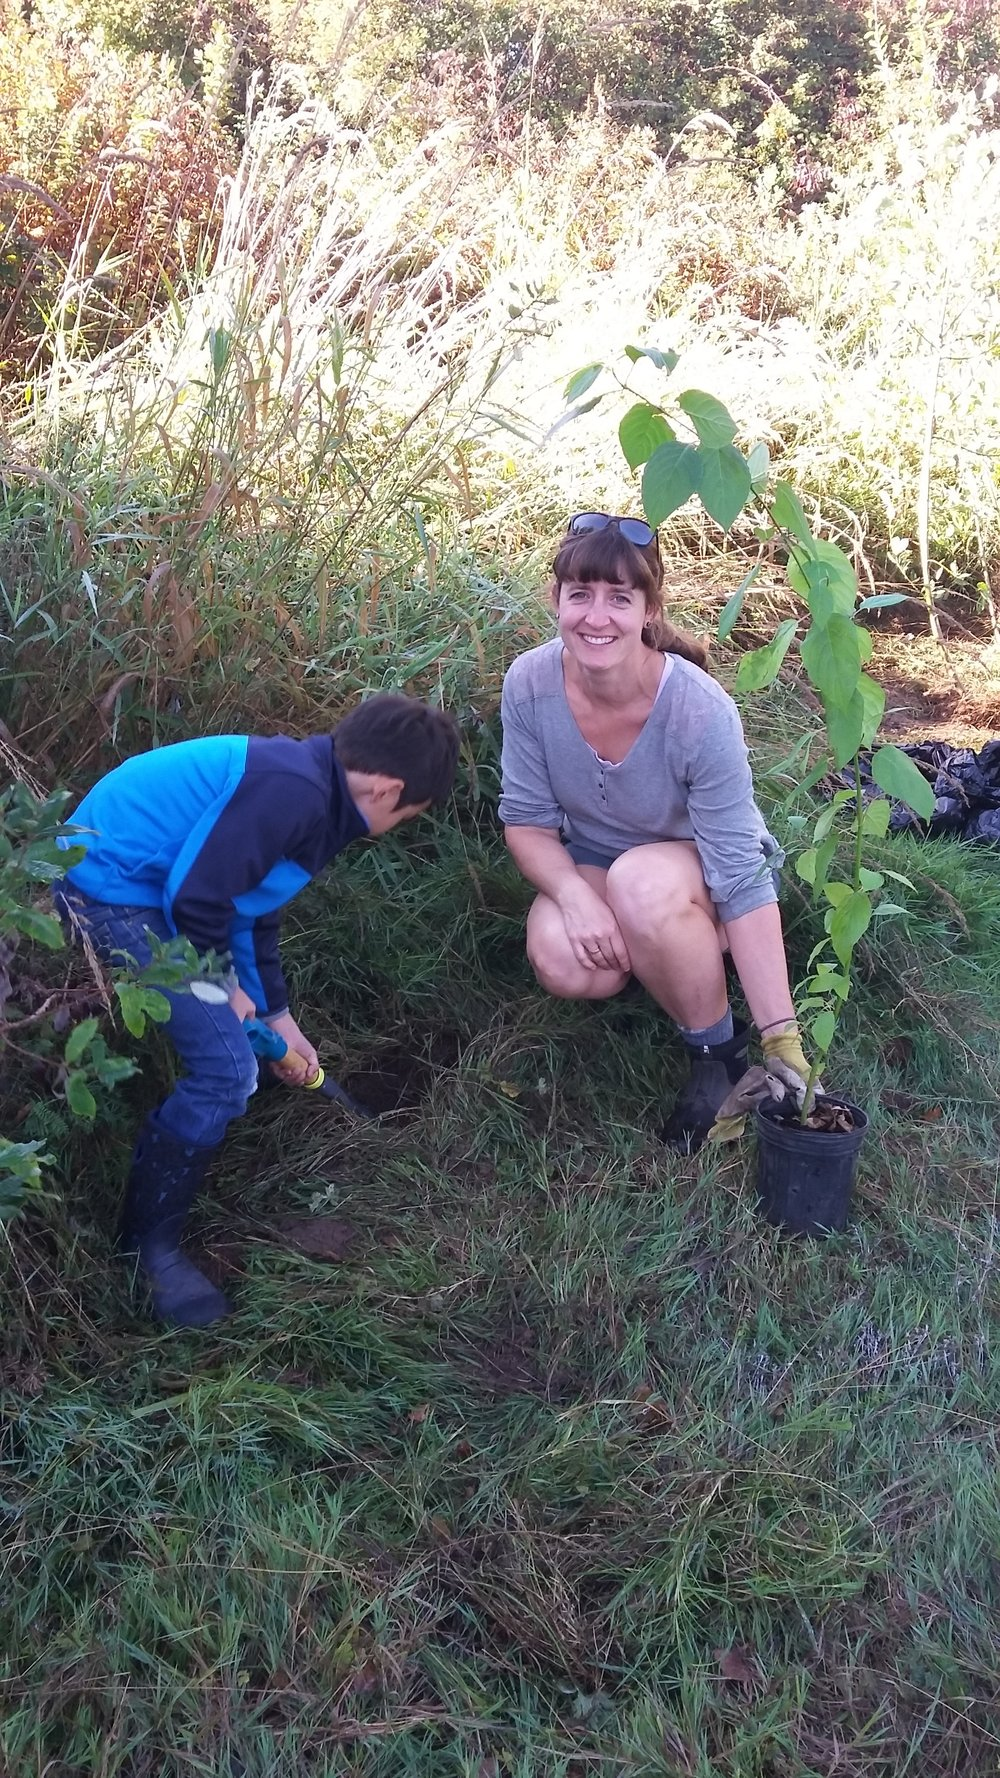 Planting riparian species at Somenos Creek - Photo by Elizabeth Aitken